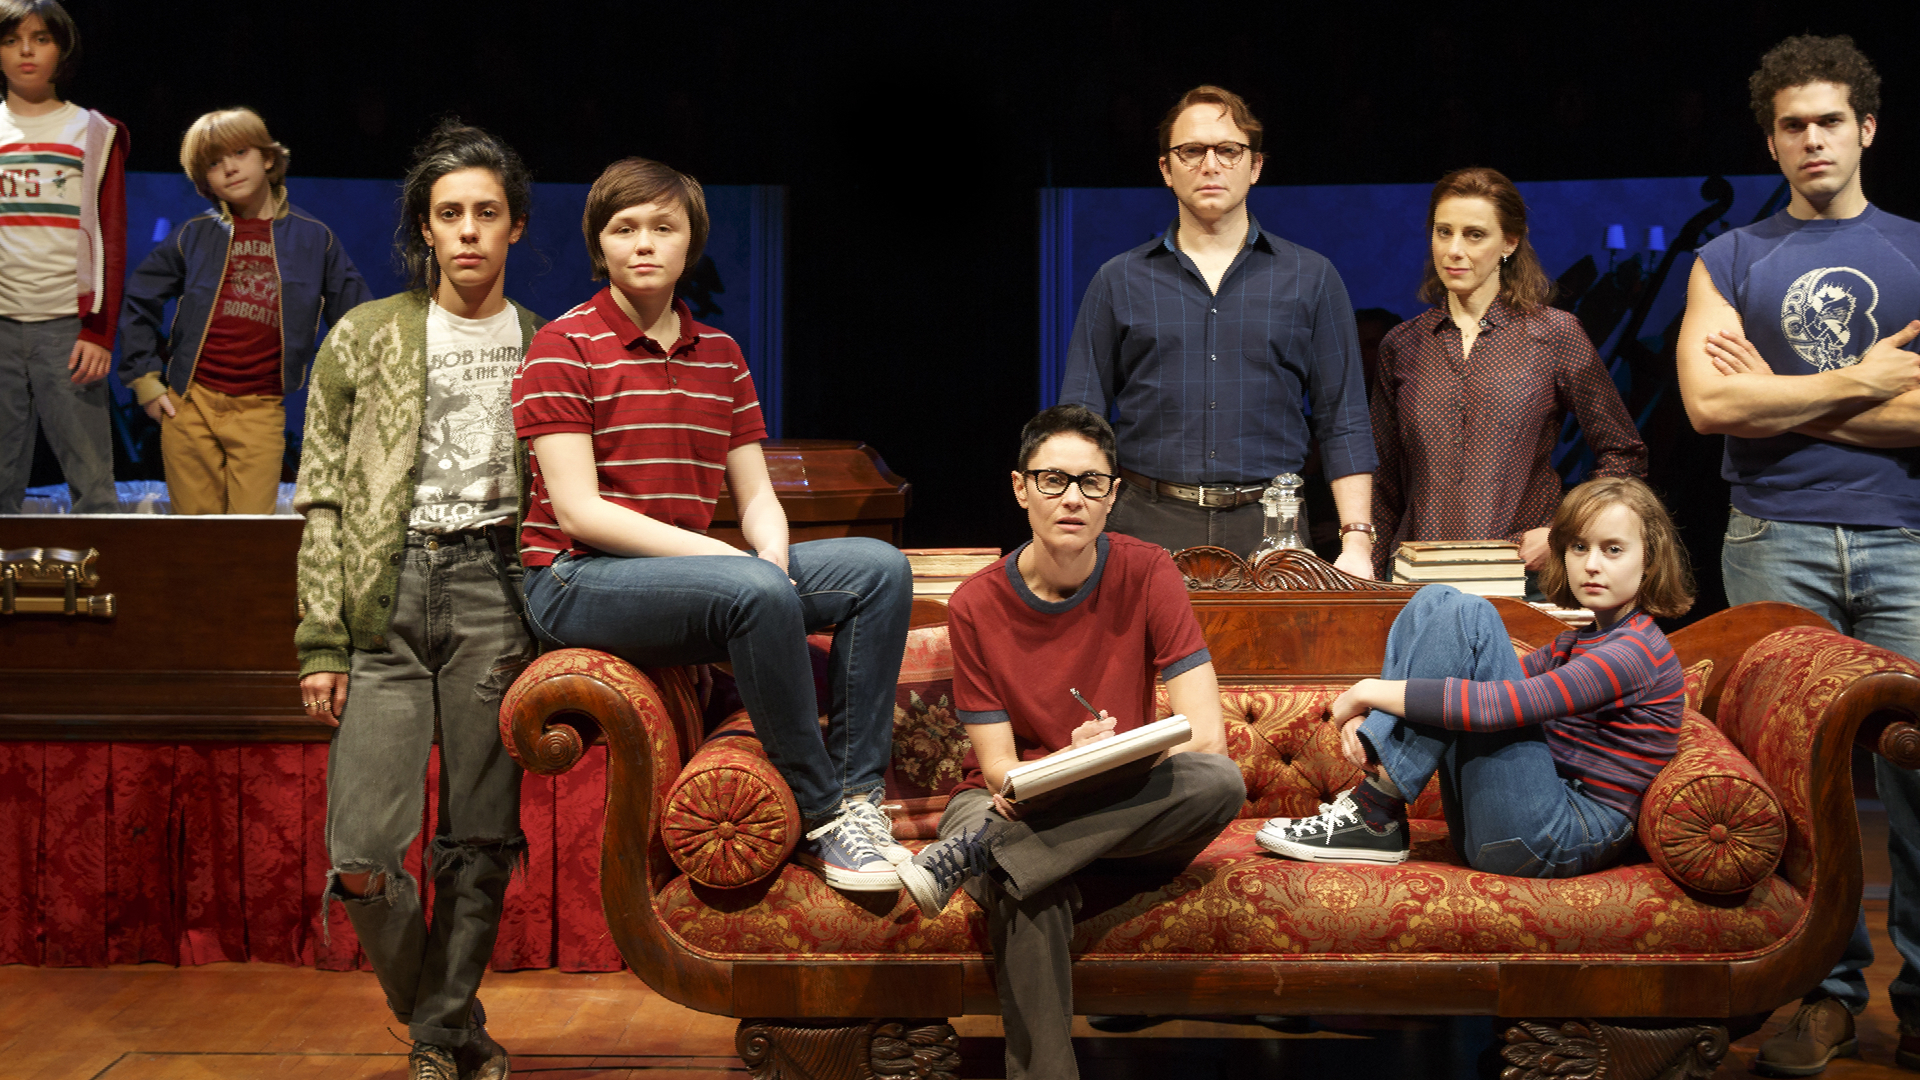 """Alison Bechdel's """"Fun Home"""": The Coming-Out Memoir That Became a Hit Broadway Musical"""